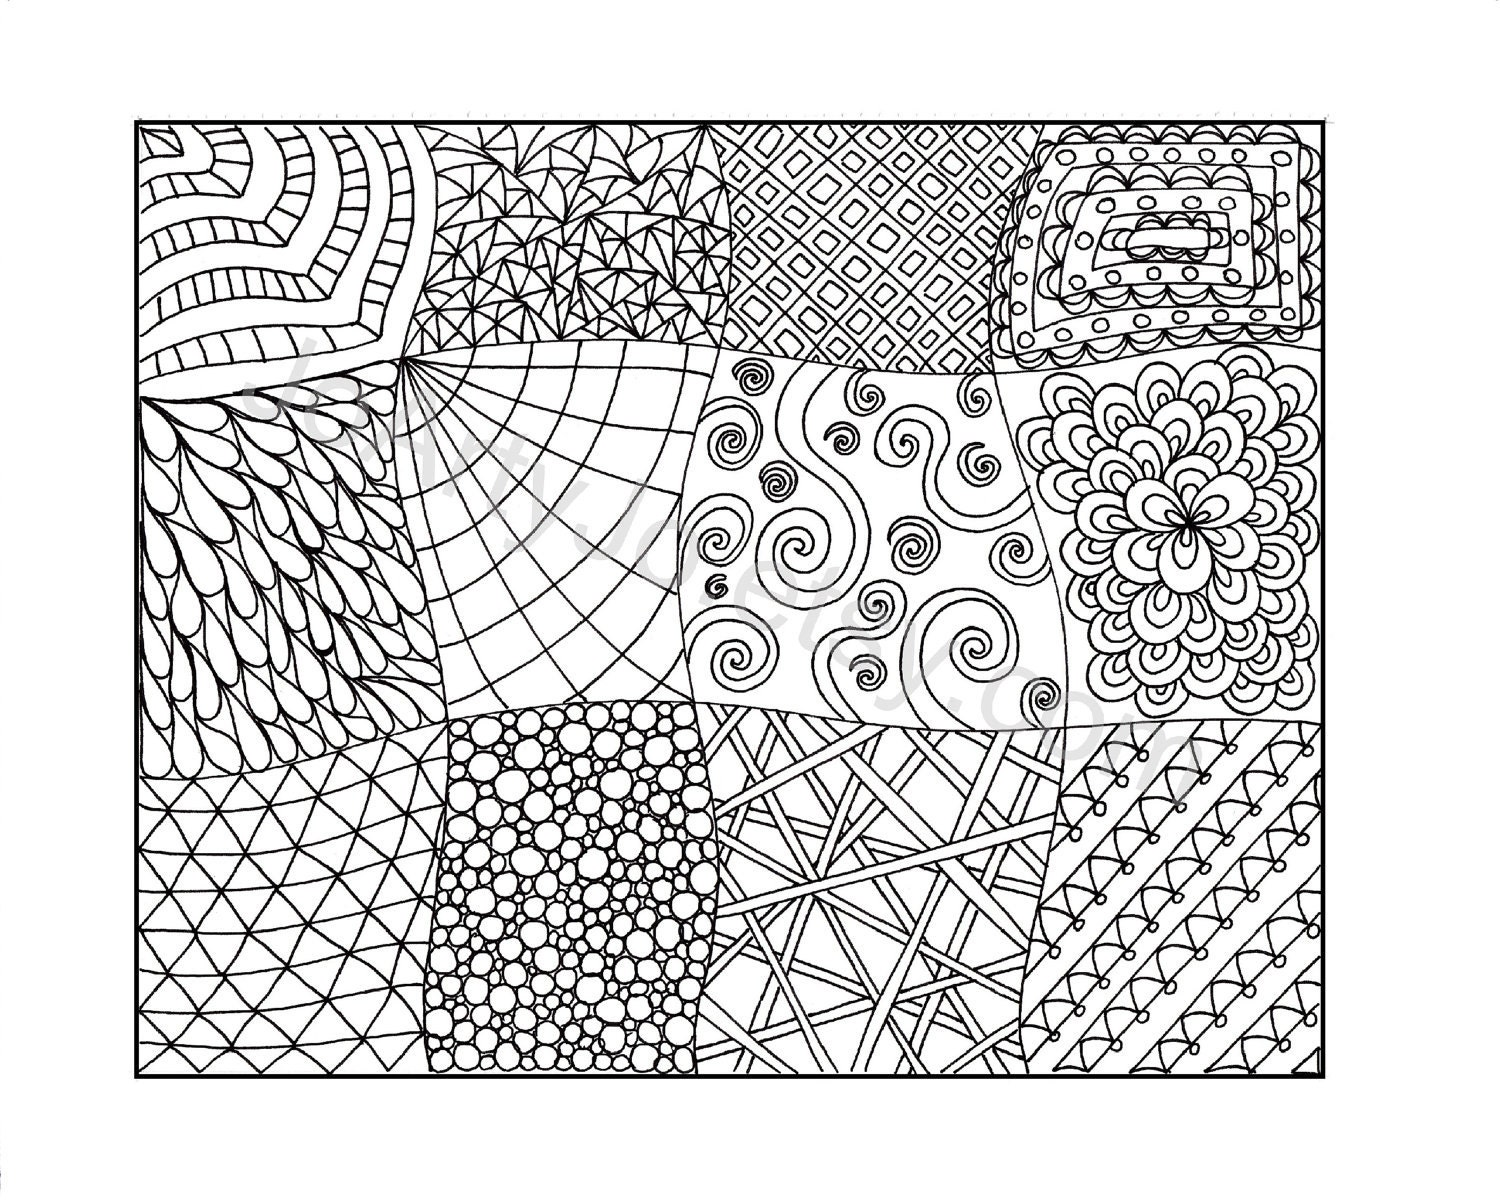 Coloring Pages Pdf : Zendoodle coloring page printable pdf zentangle inspired